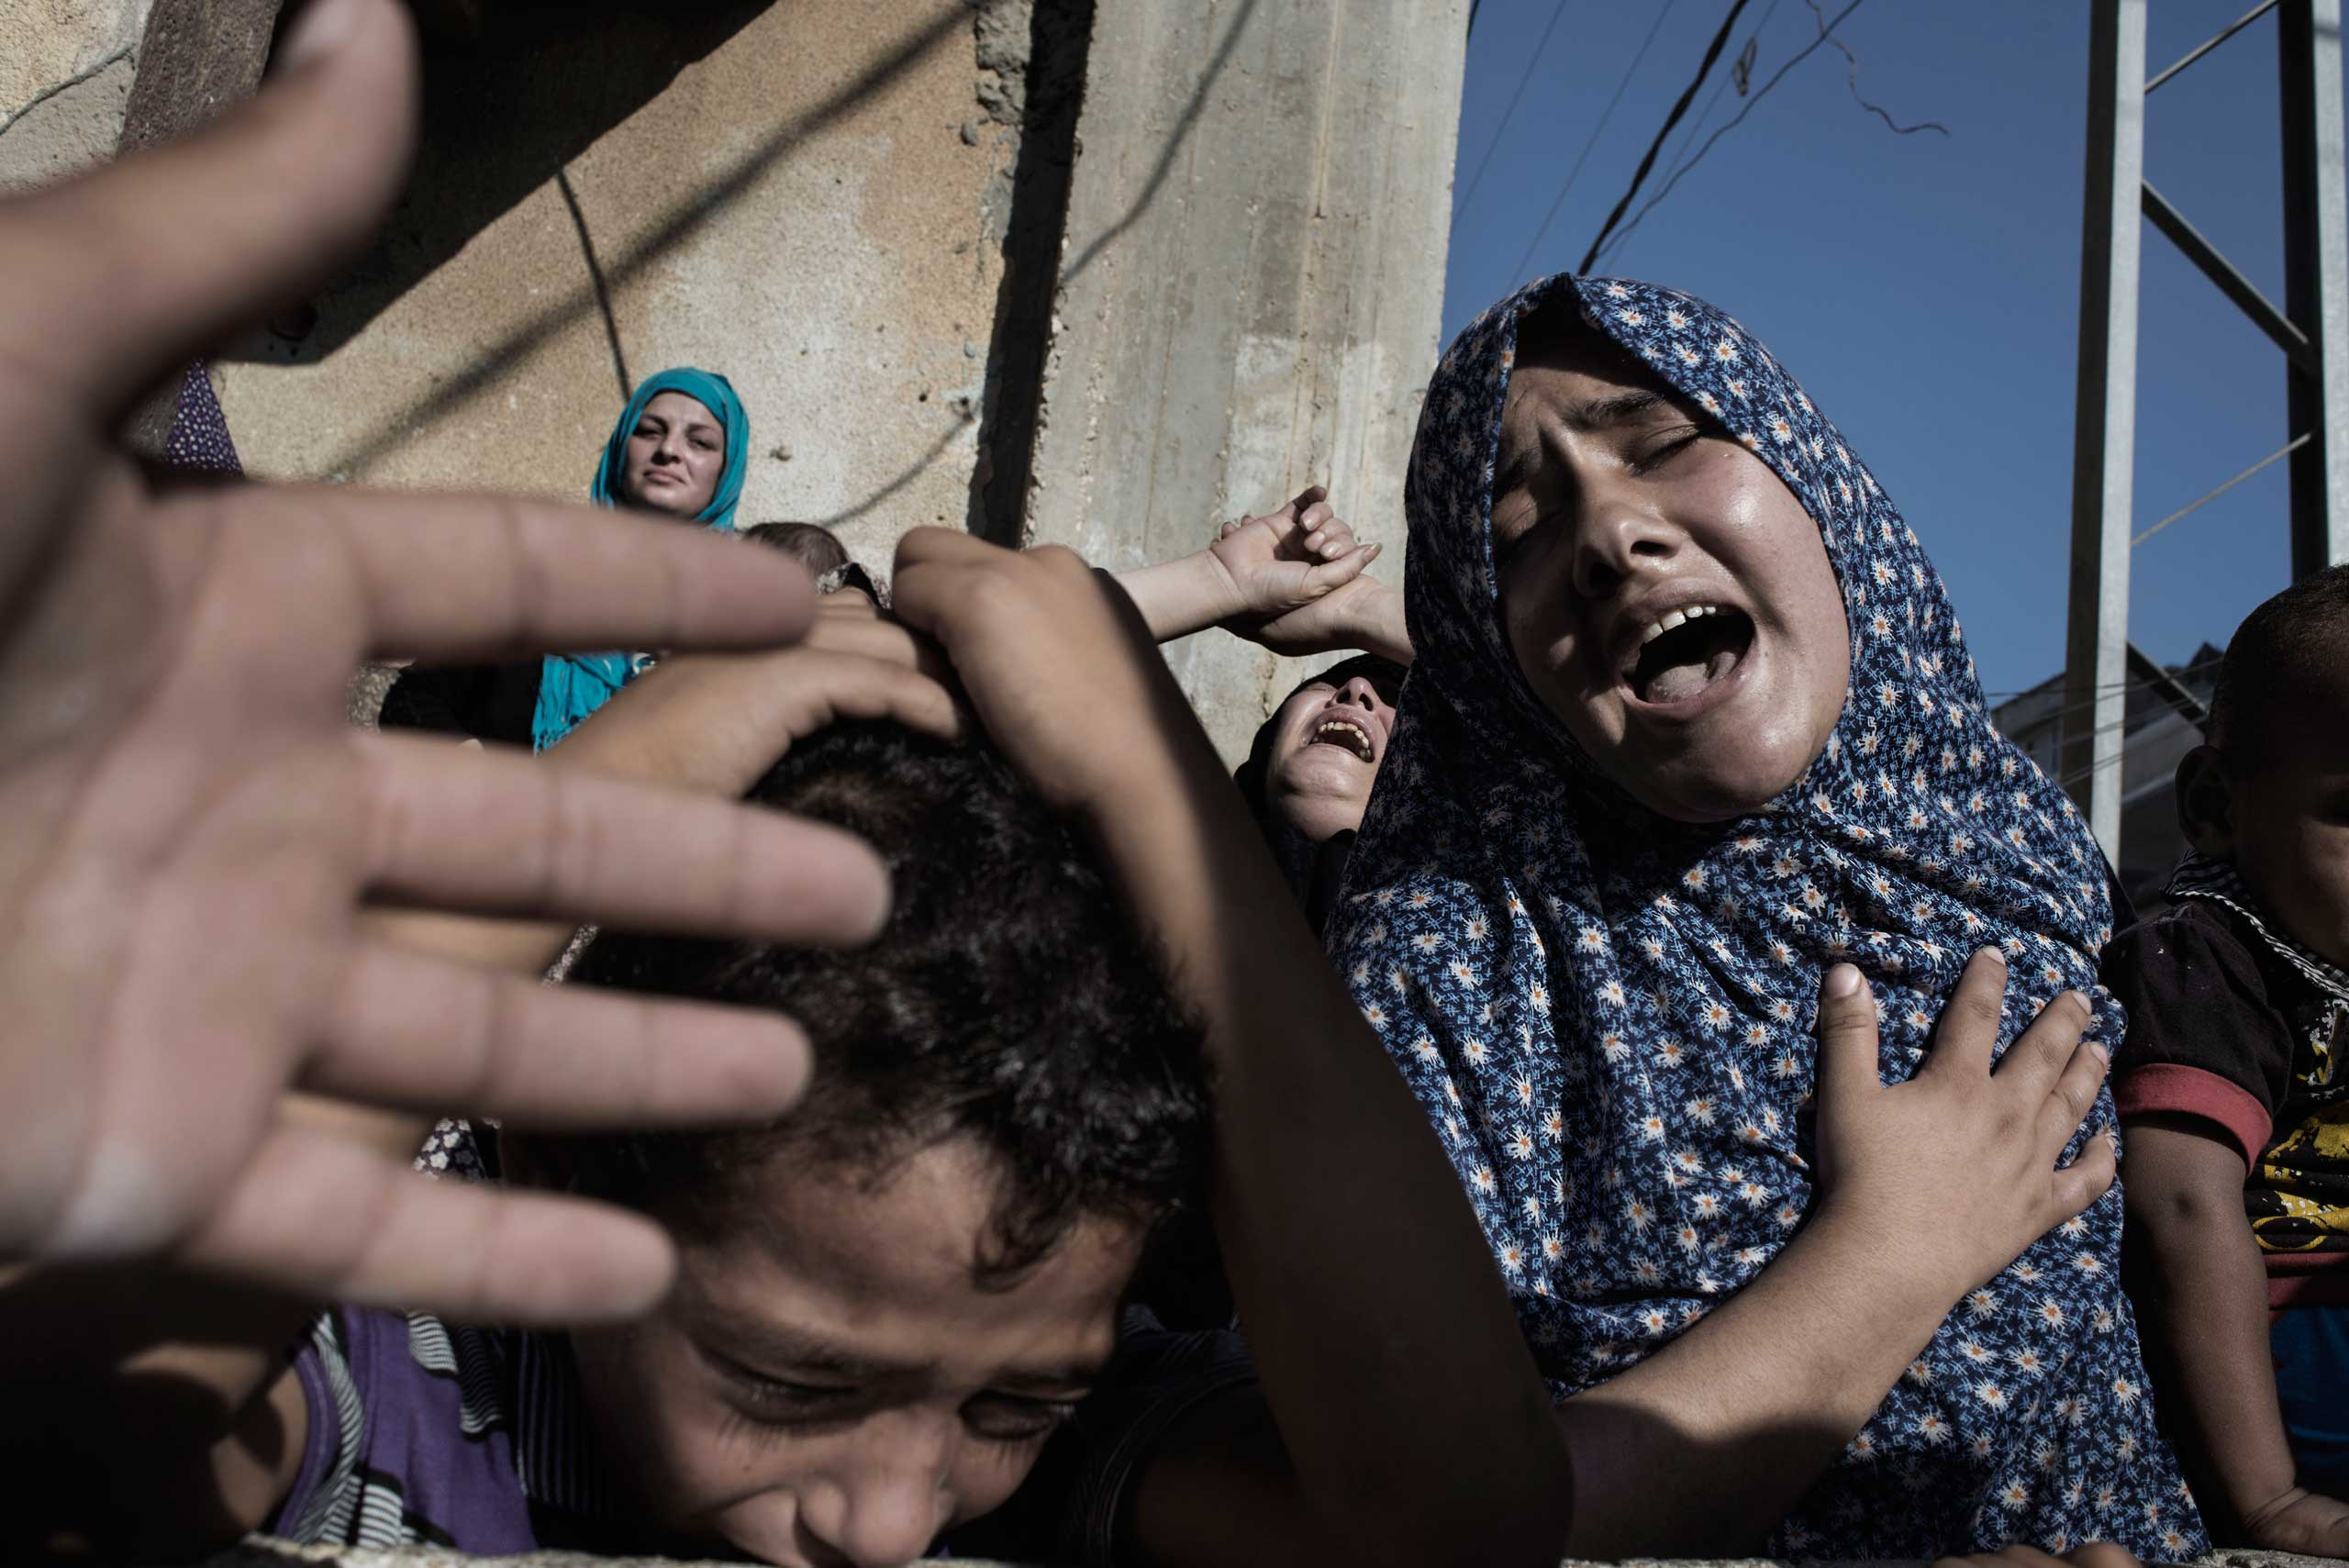 Relatives of four boys from the Bakr family, mourning at their funeral in Gaza City, July 16, 2014. From  'Caught in the Crossfire': Shocking Photographs from Gaza